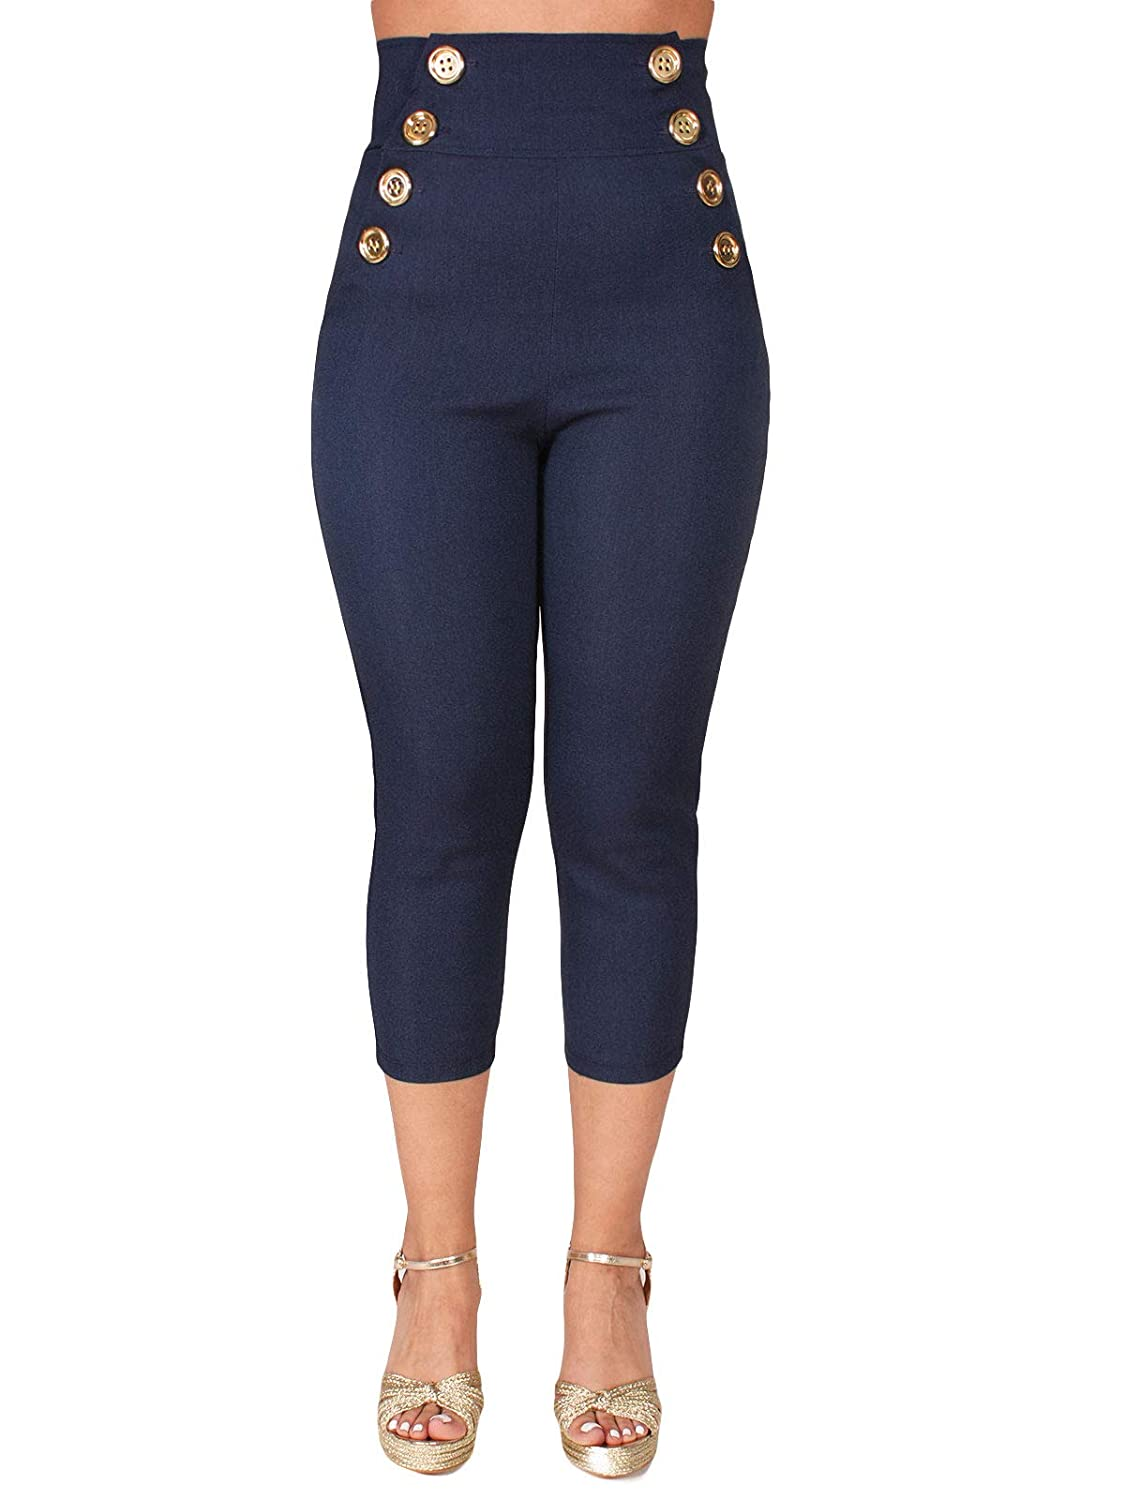 Women's Sailor Button High Waist Nautical Navy Denim Capri Pants